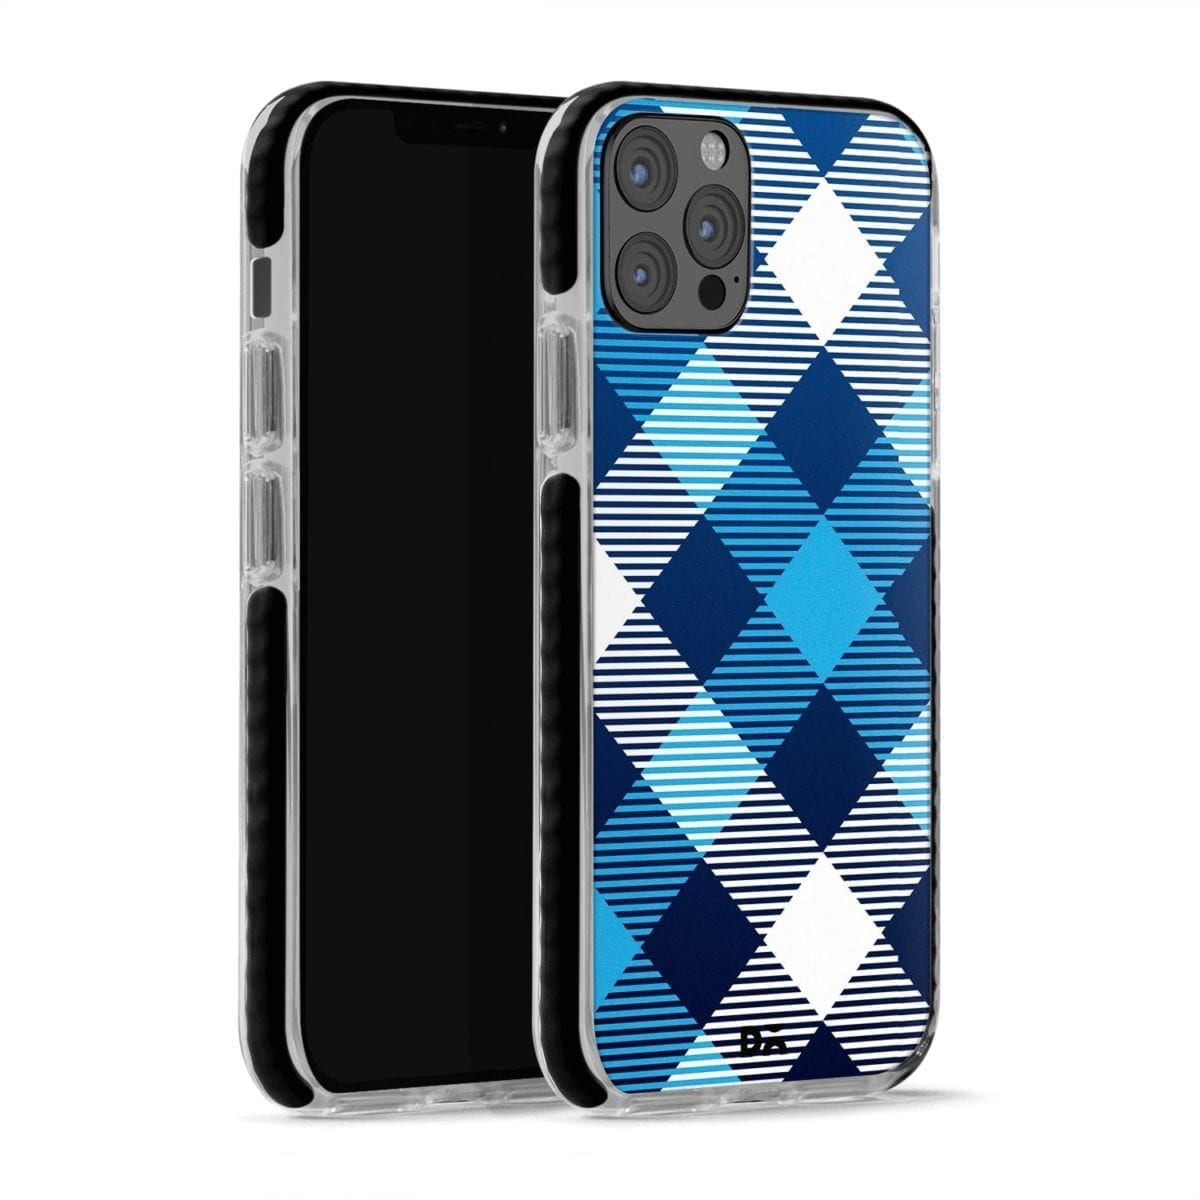 Medium Static Nightfall Checks Stride Case Cover for Apple iPhone 12 Pro and Apple iPhone 12 Pro Max with great design and shock proof | Klippik | Online Shopping | Kuwait UAE Saudi